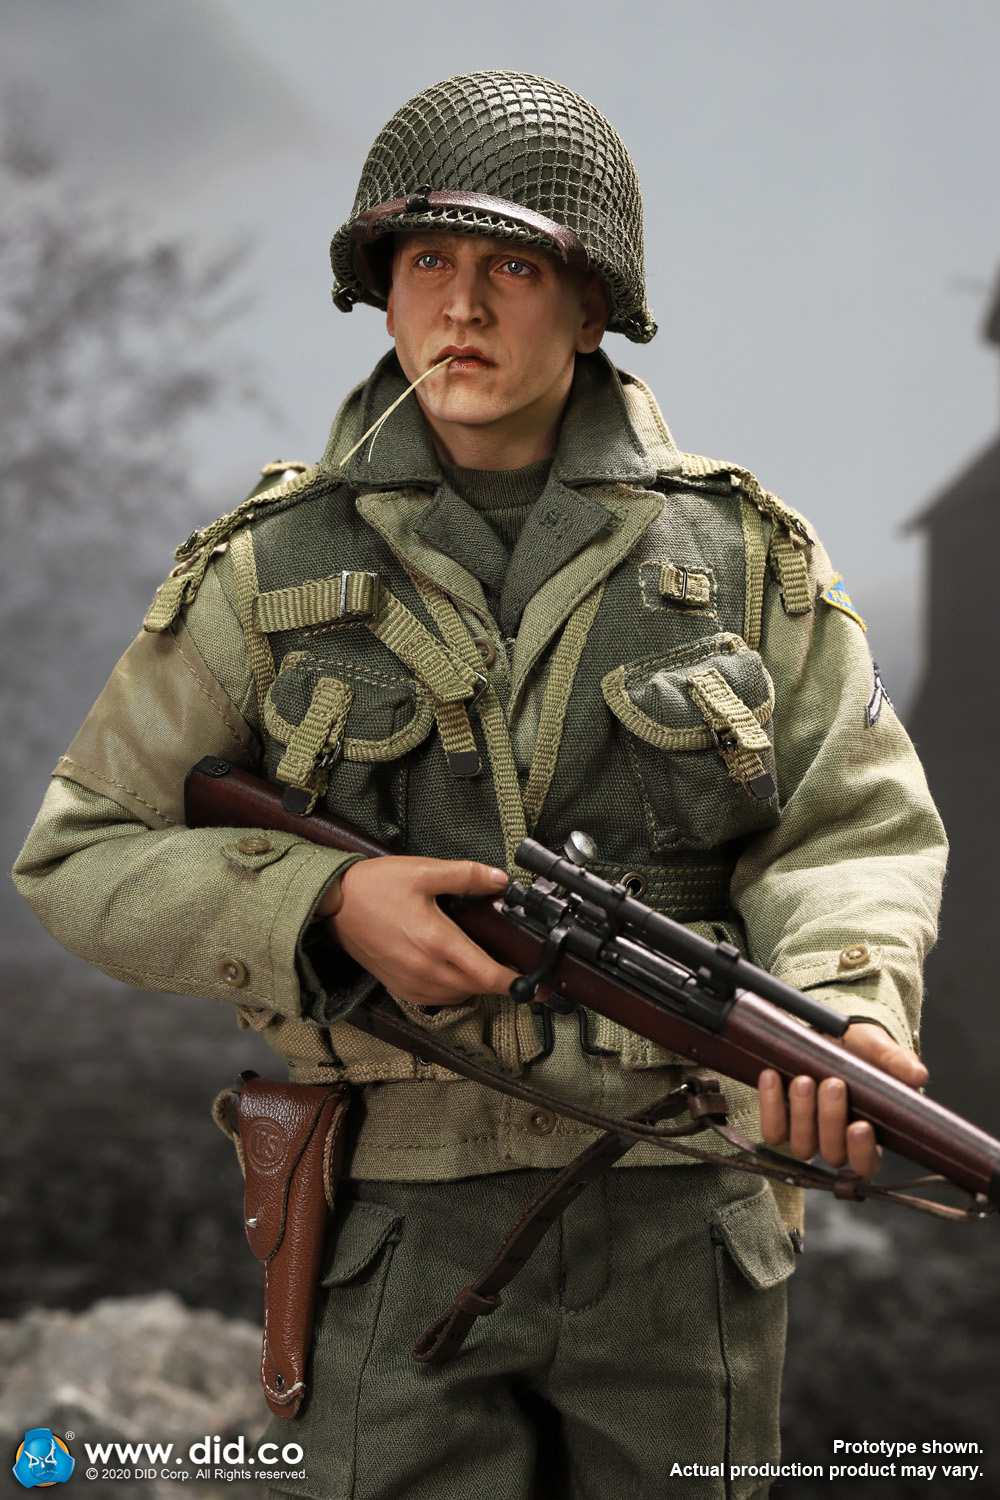 DiD - NEW PRODUCT: DiD: A80144 WWII US 2nd Ranger Battalion Series 4 Private Jackson 32111